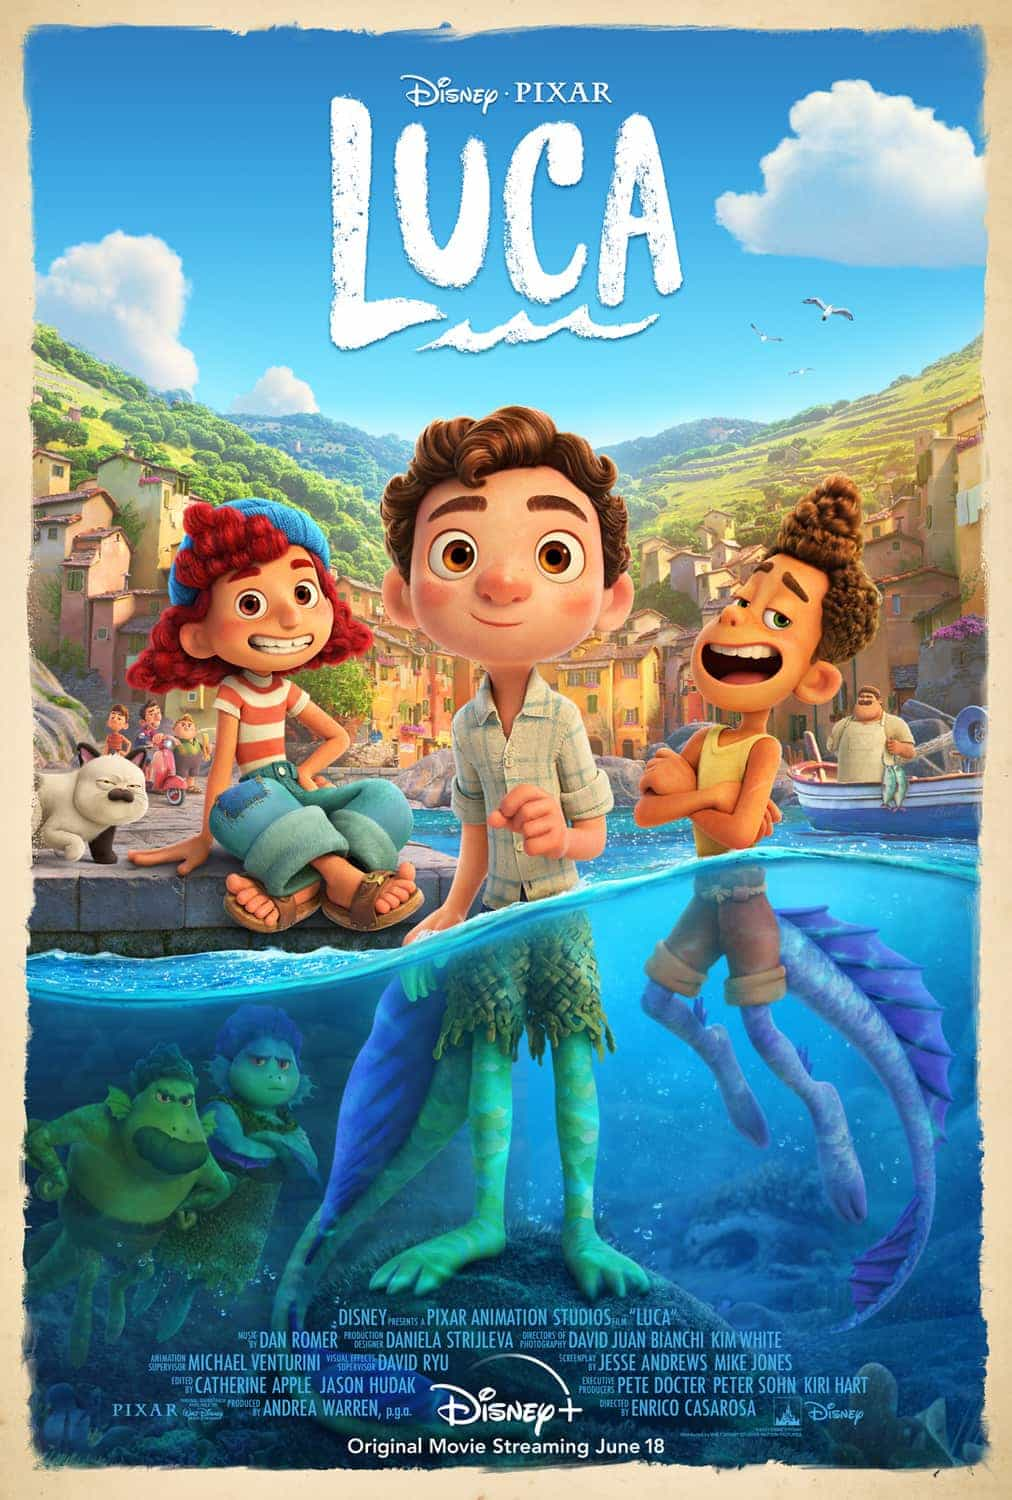 First trailer for upcoming Disney/Pixar movie Luca - movie released June 18th